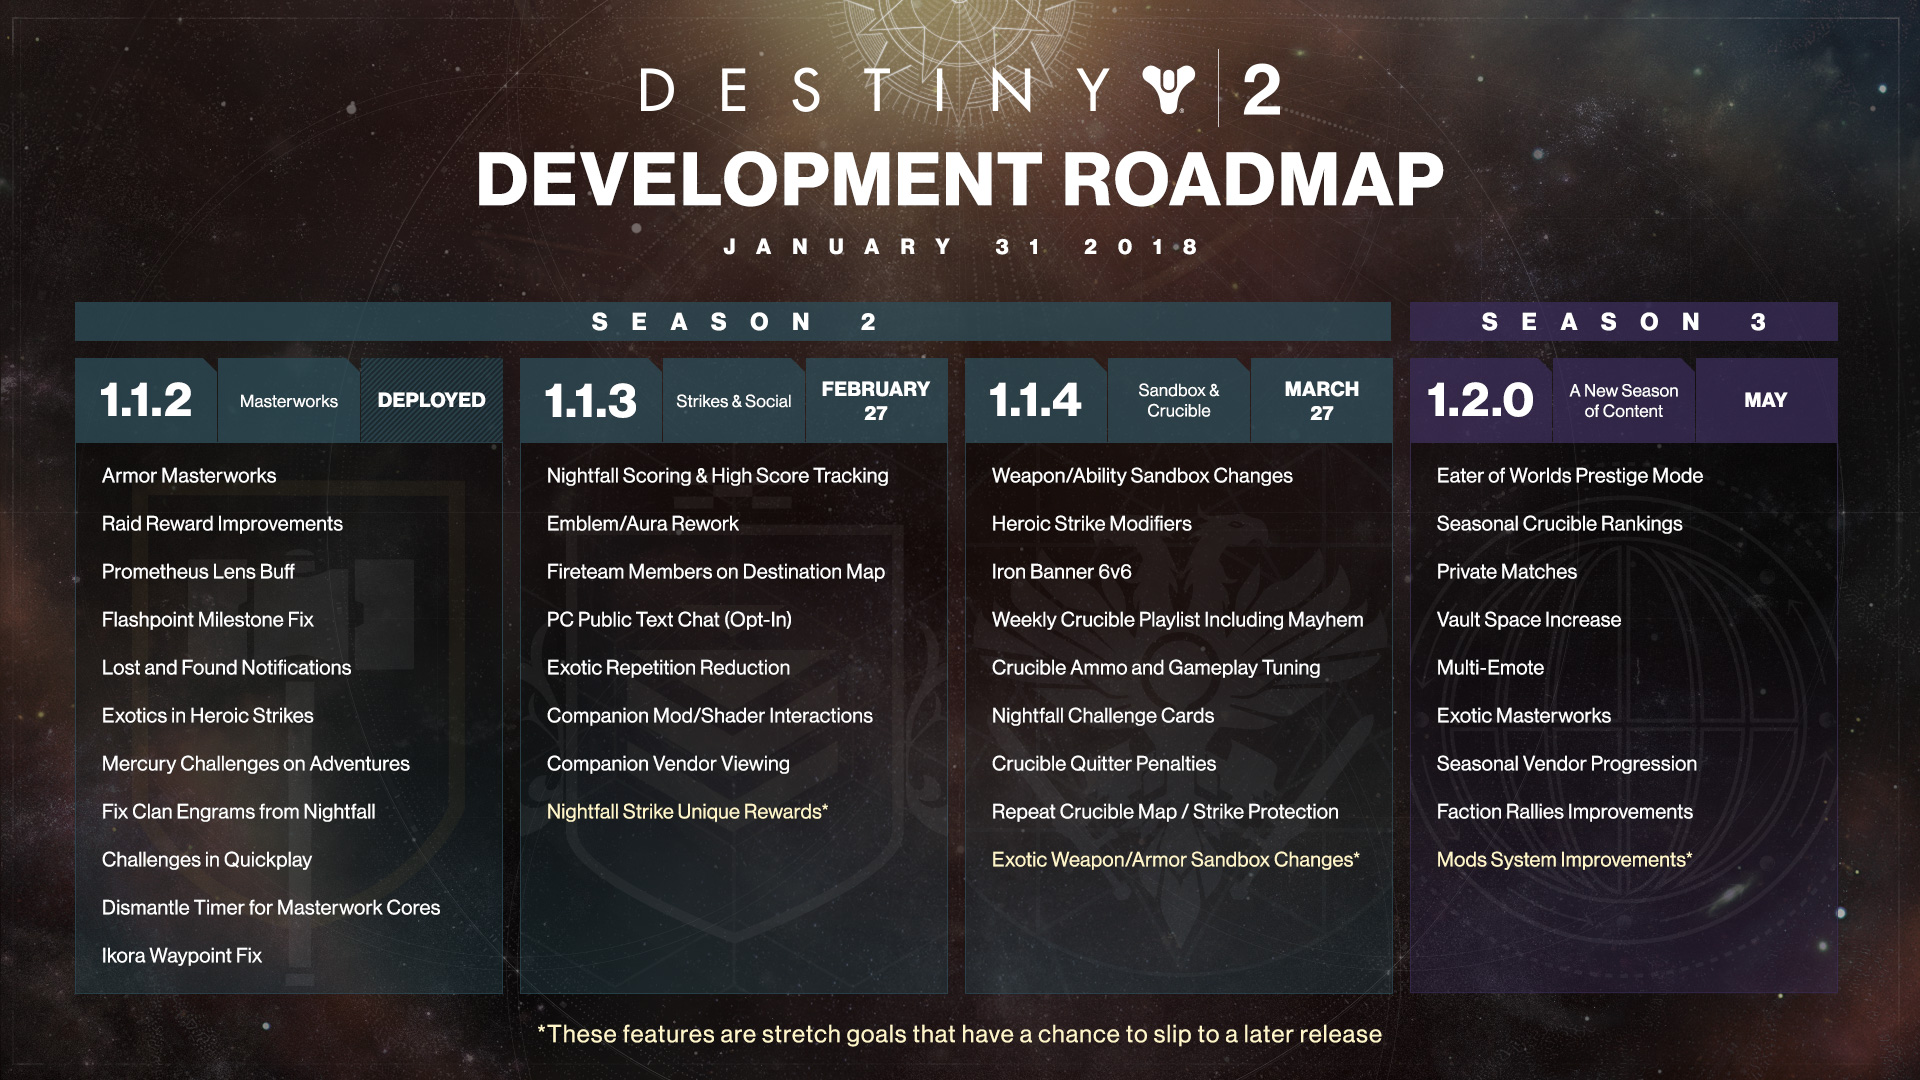 Bungie's 'Destiny 2' roadmap is created to win back players